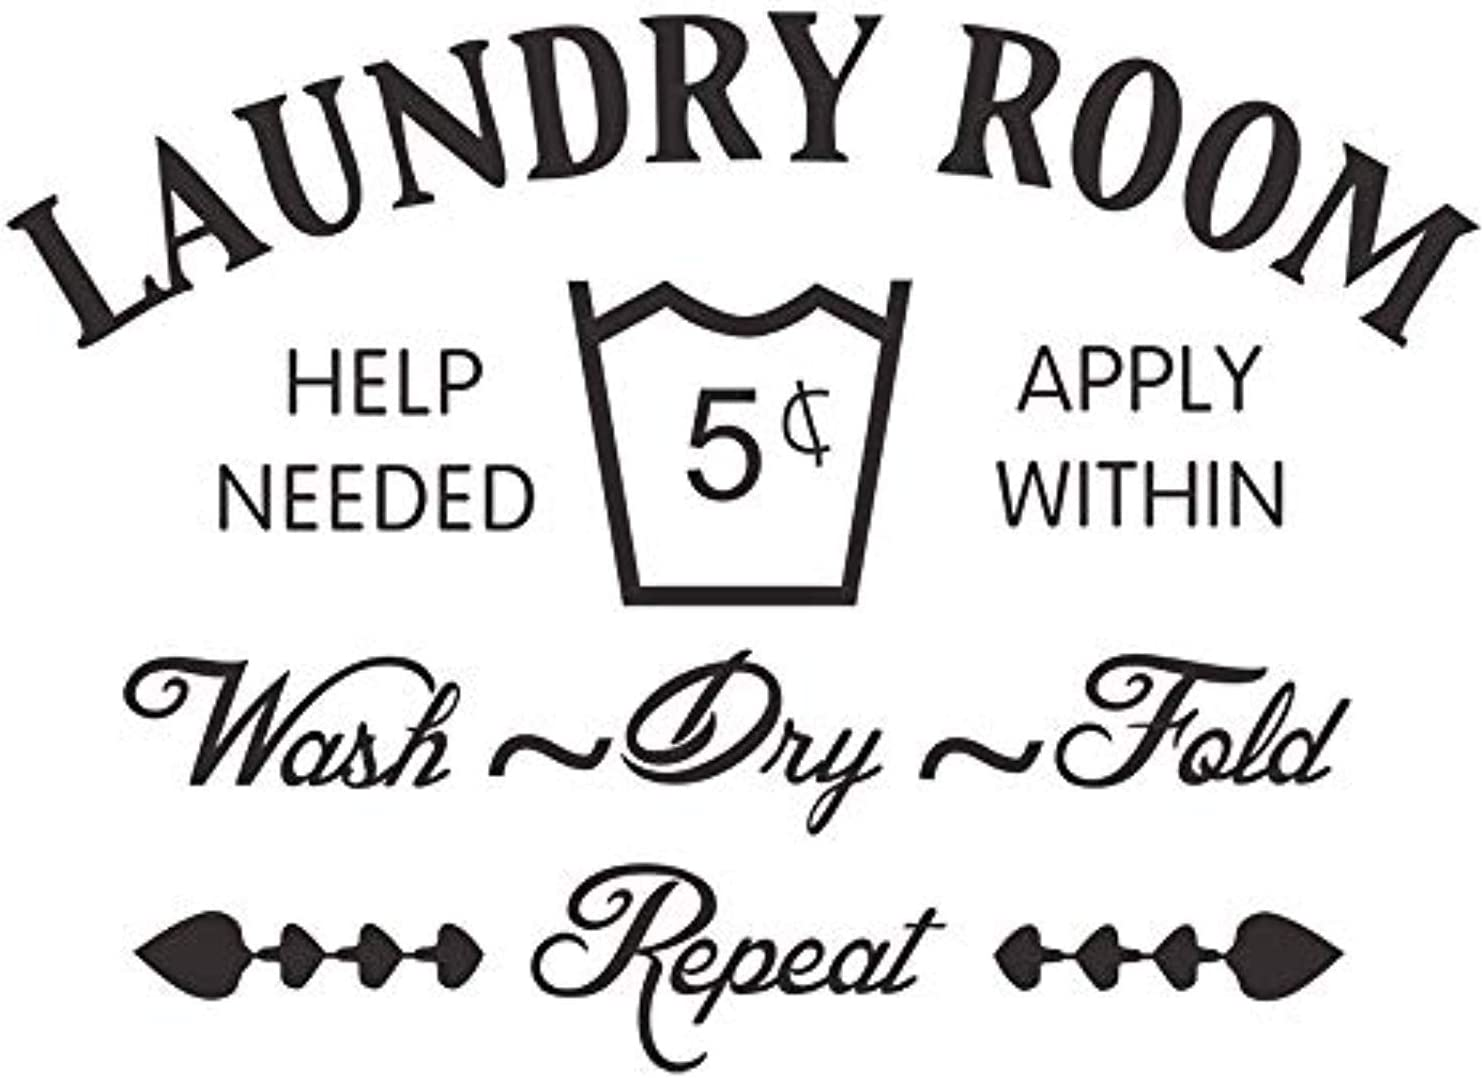 Laundry Room Home Wall Decal Words Decor Sticker Vinyl Decor Words Waterproof